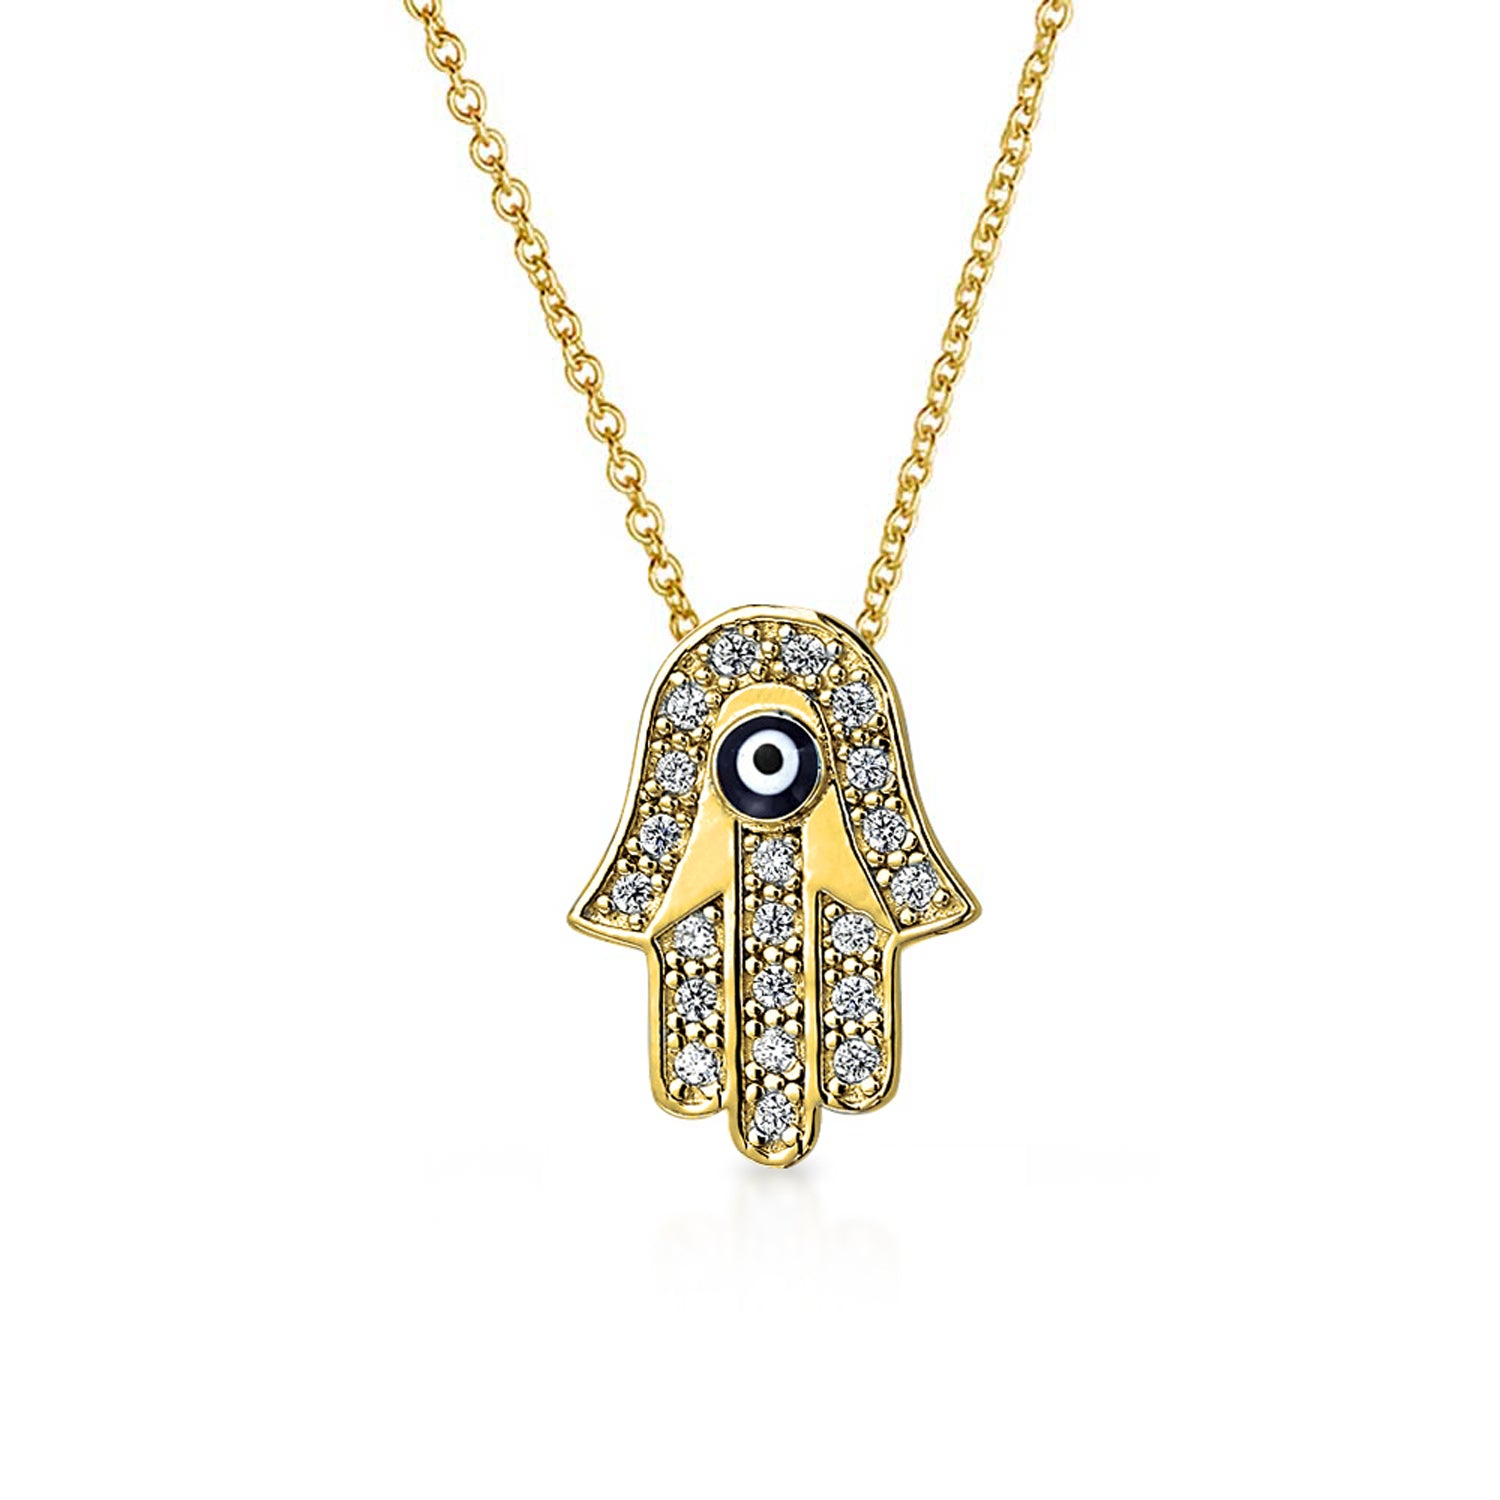 Hamsa Hand Luck Evil Eye Charm Pendant .925 Sterling Silver CZ Necklace